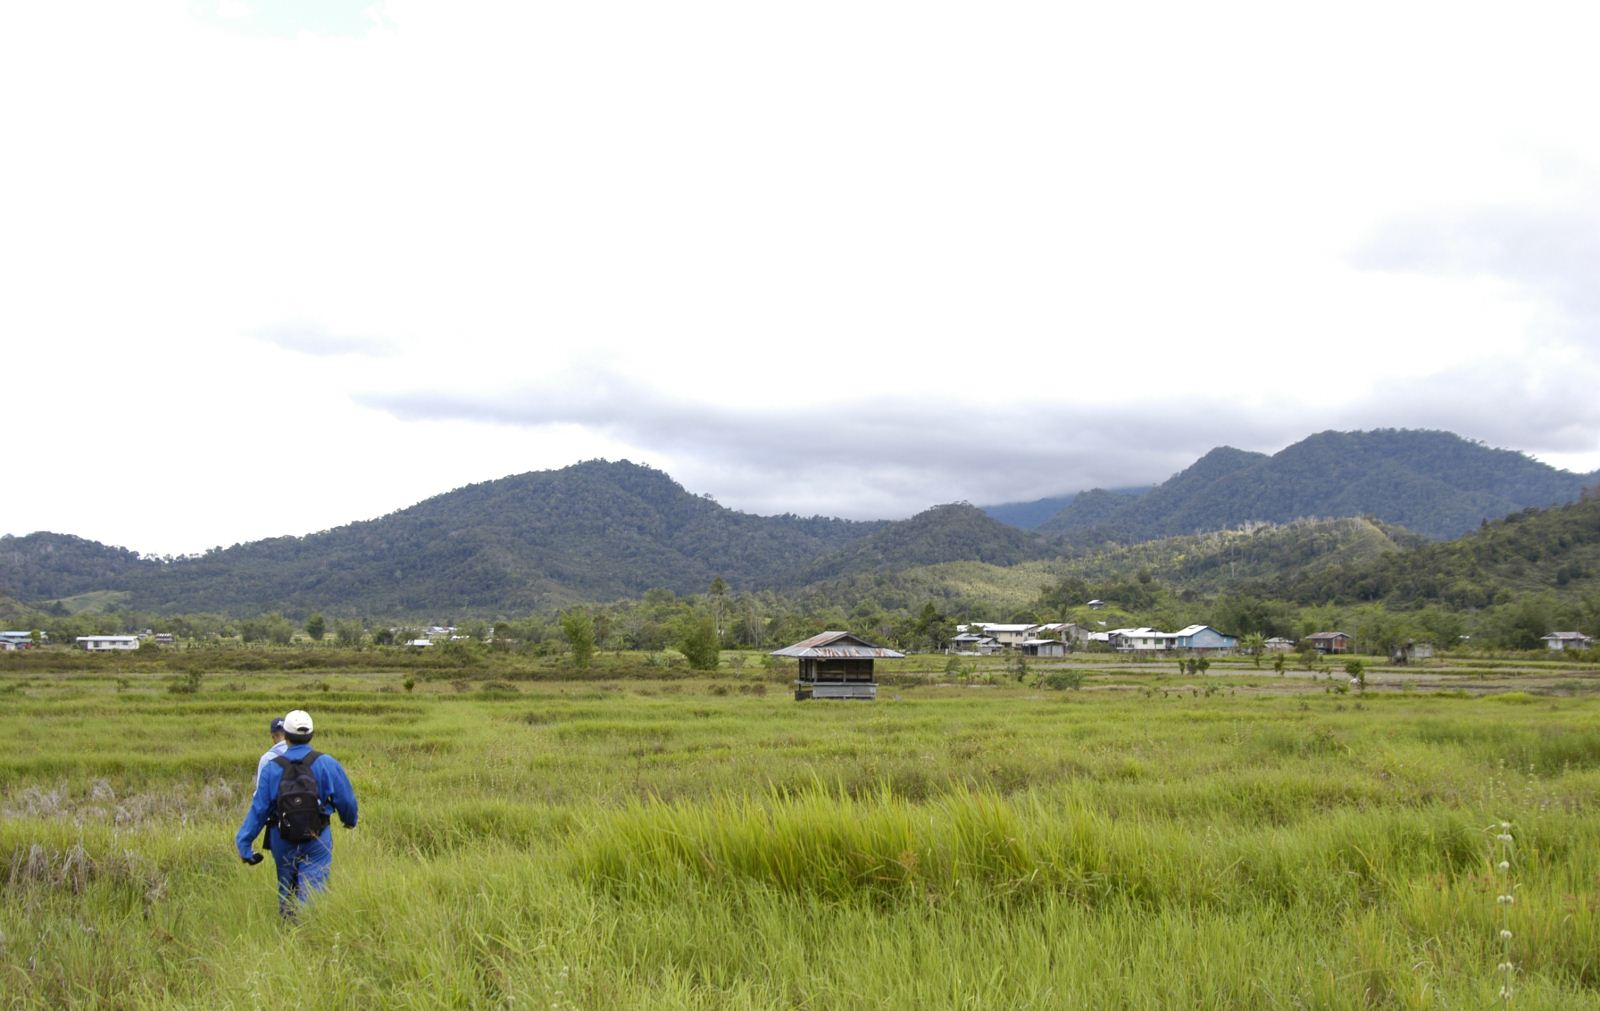 The Land of Wind Bario Sarawak